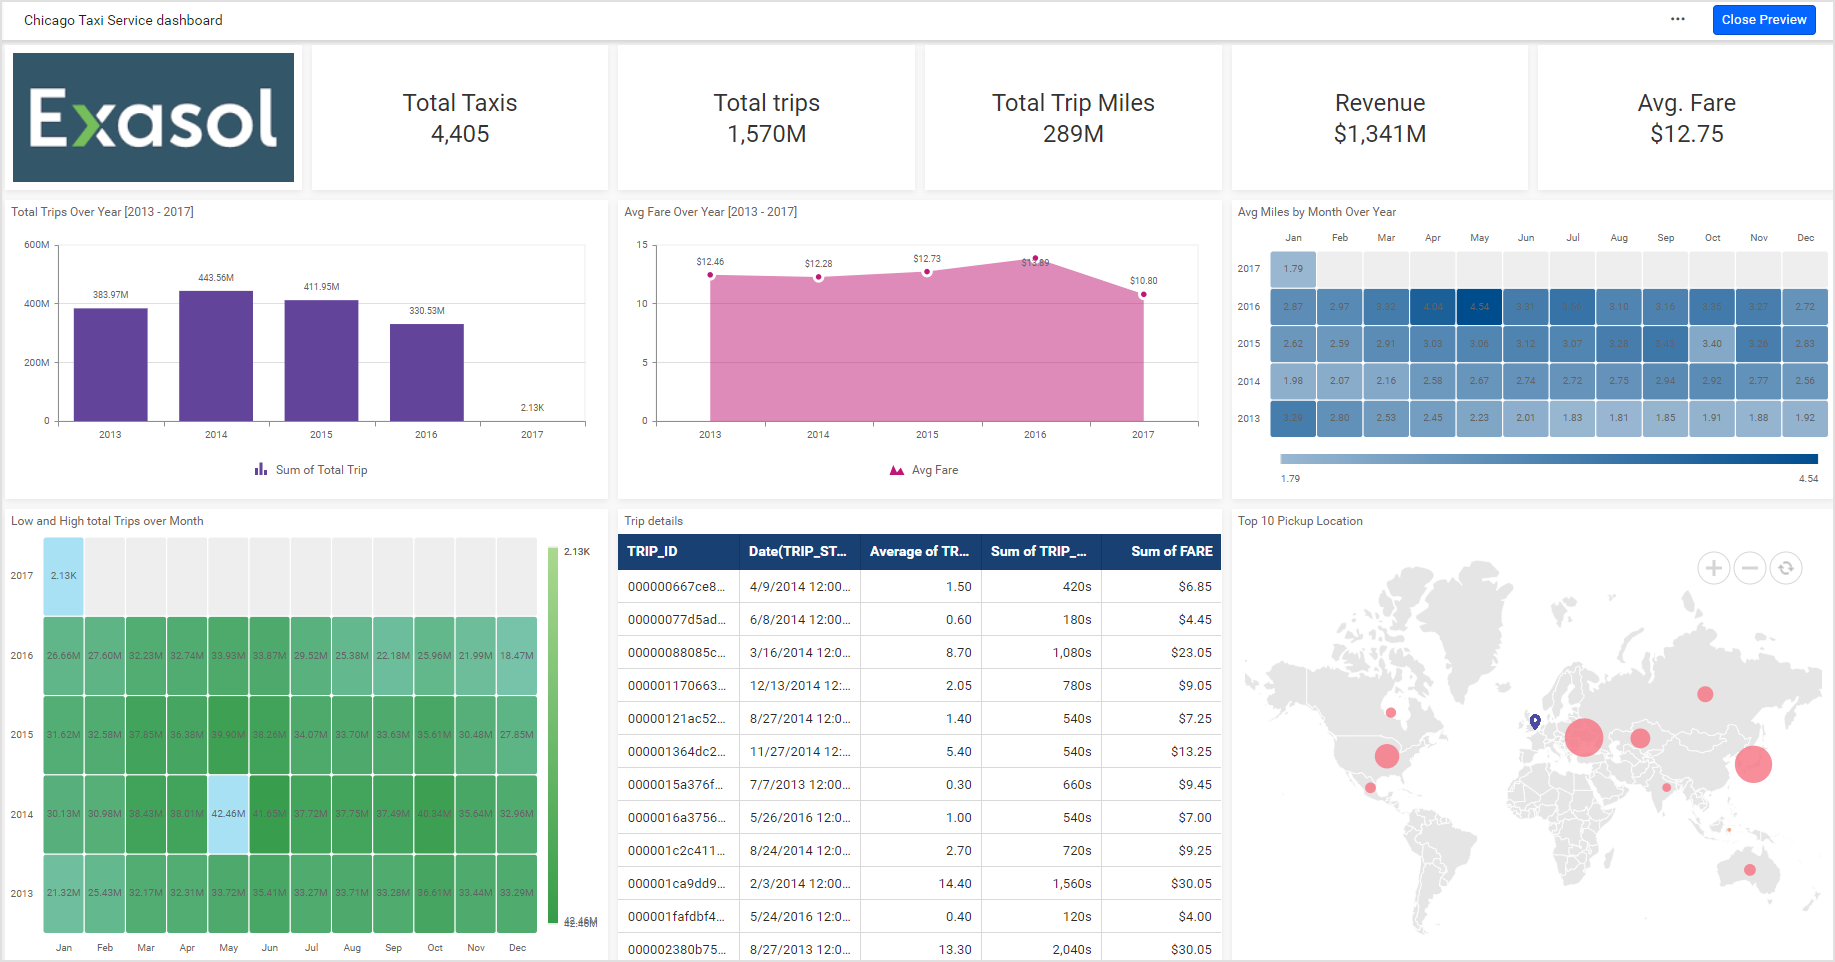 Chicago taxi service performance dashboard